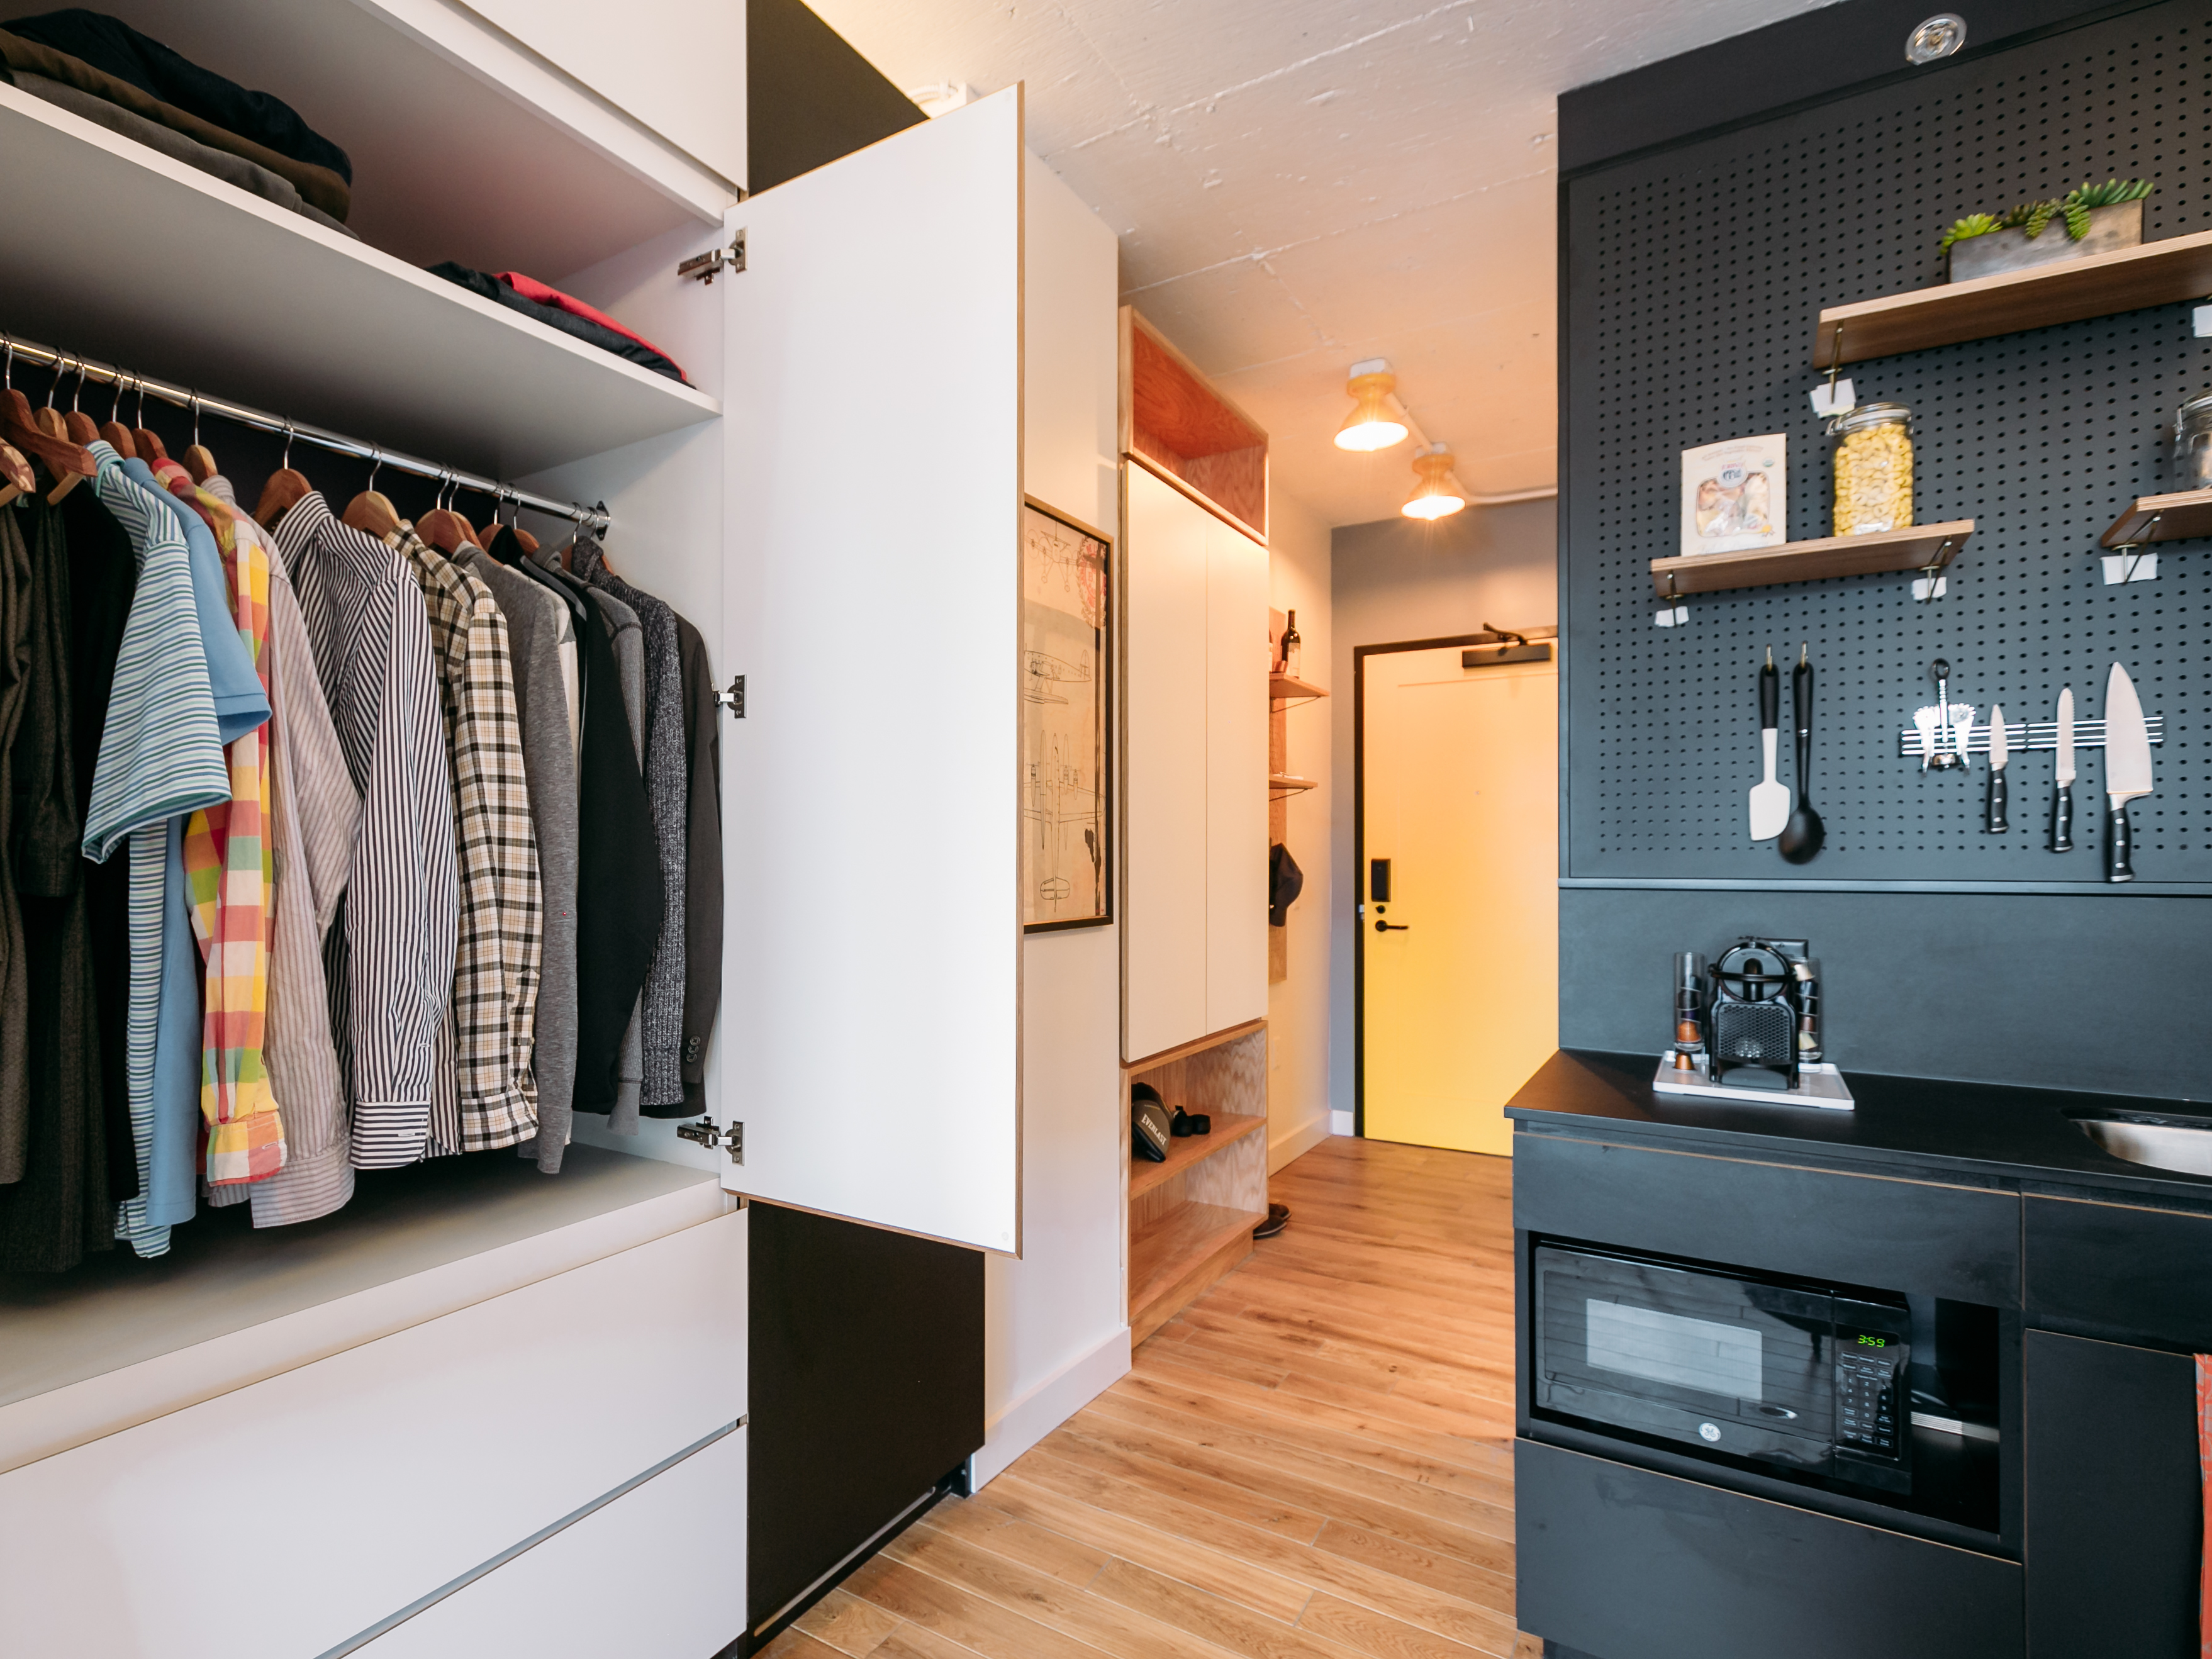 They're Small, But These Big-City Apartments Tout Their Communal Feel